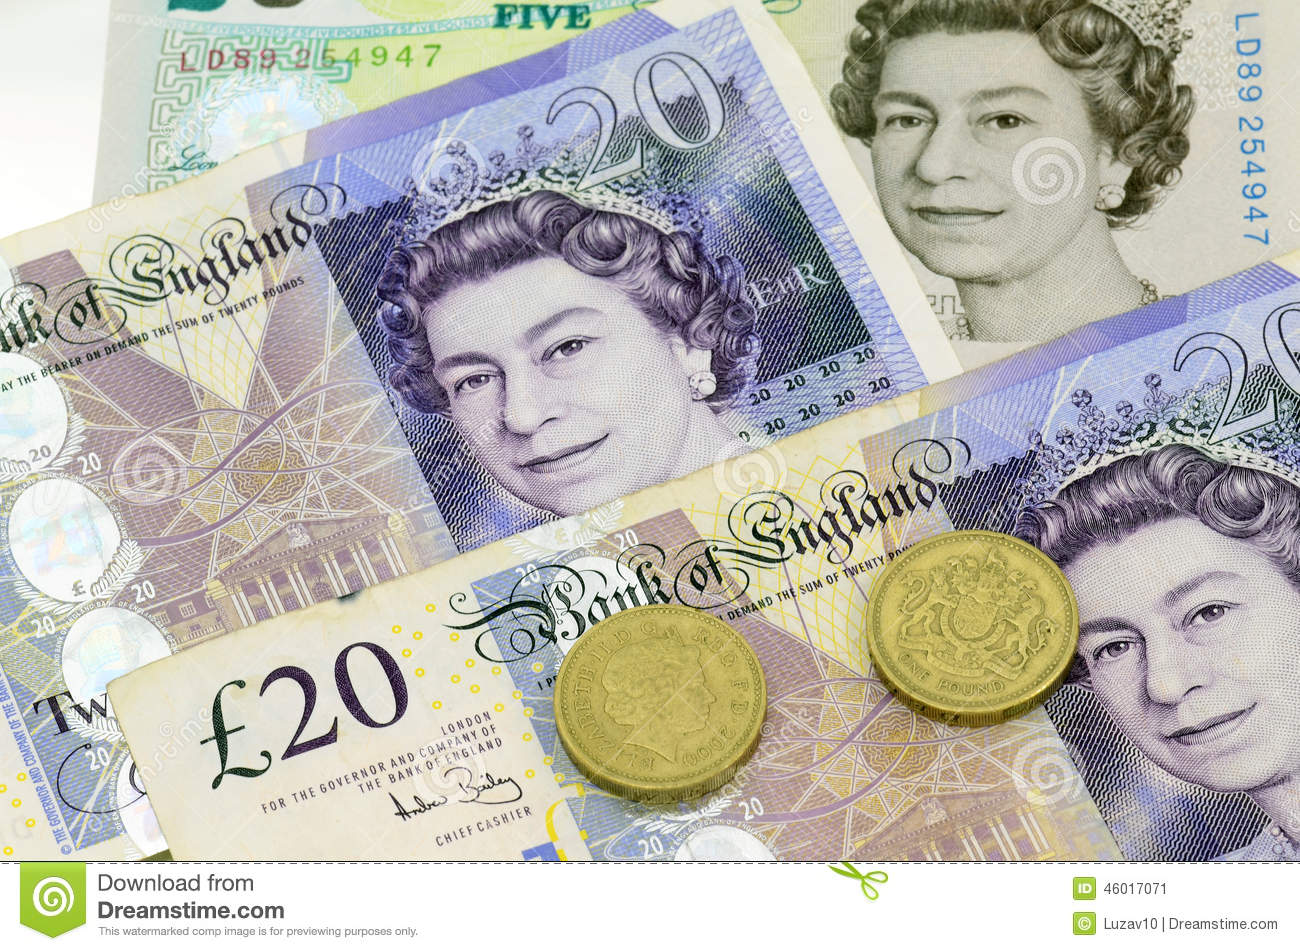 POUND sterling currency of the United Kingdom